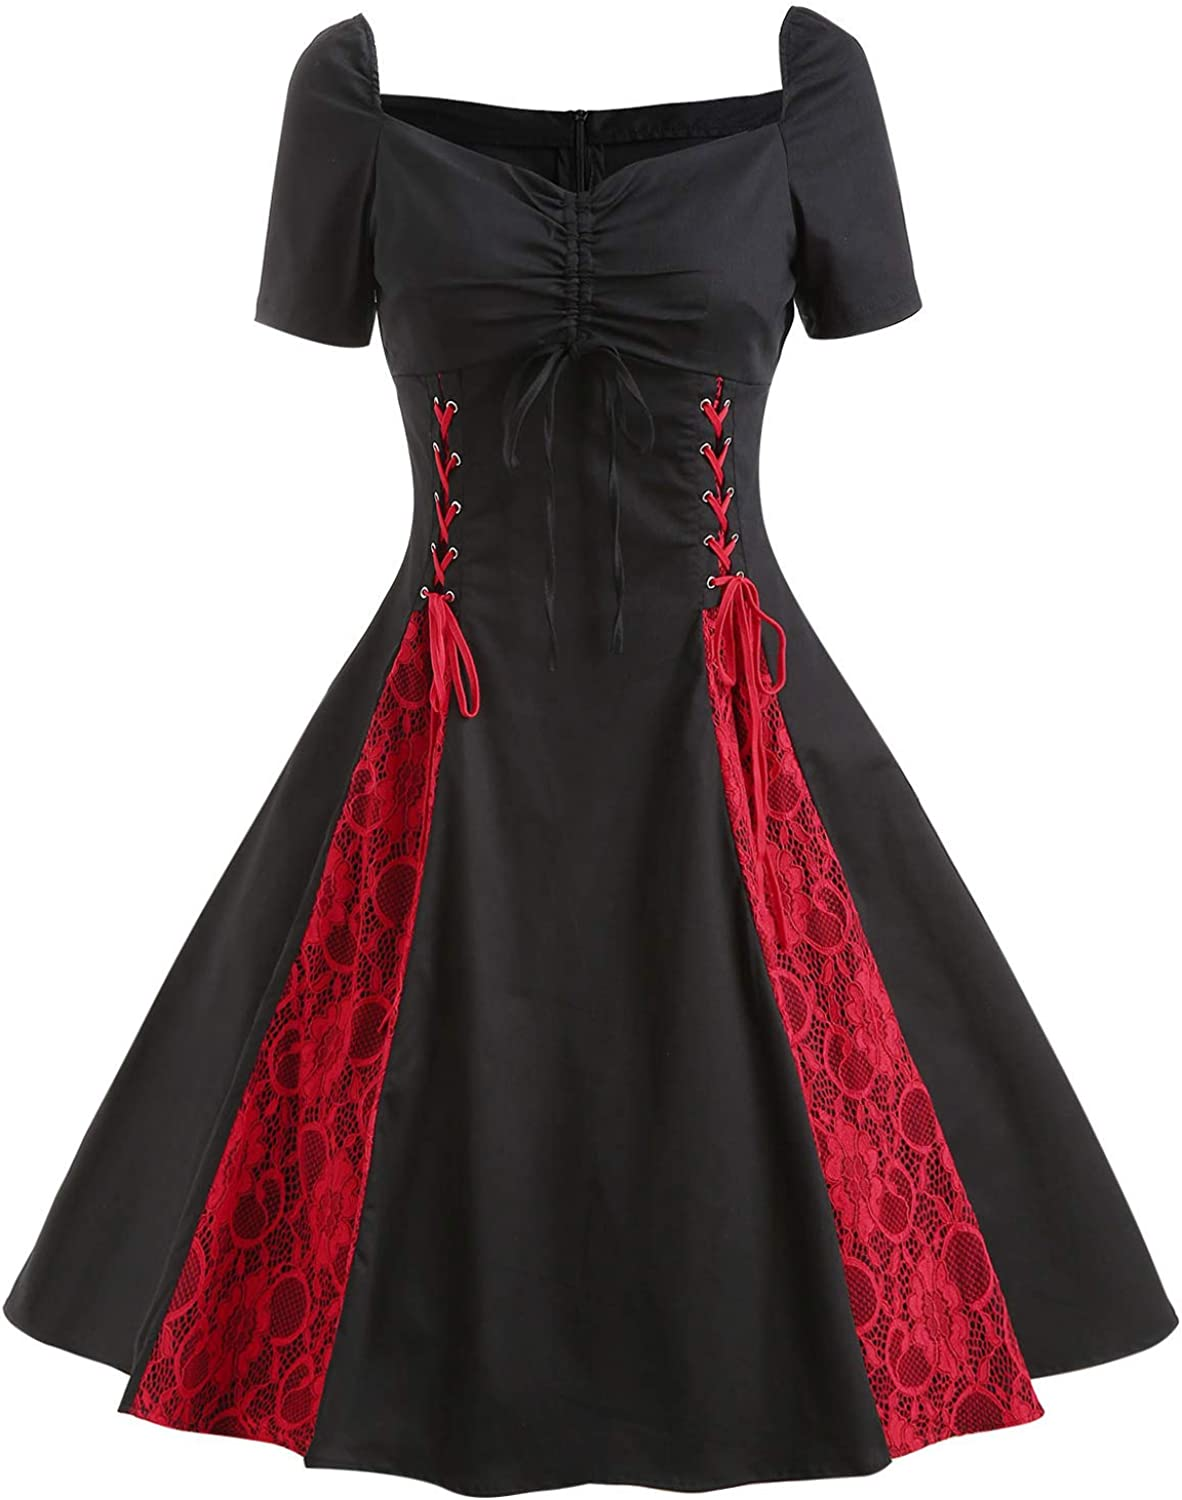 Wellwits Women's Lace-up Lace Insert Sweetheart Gothic Party Vintage Dress